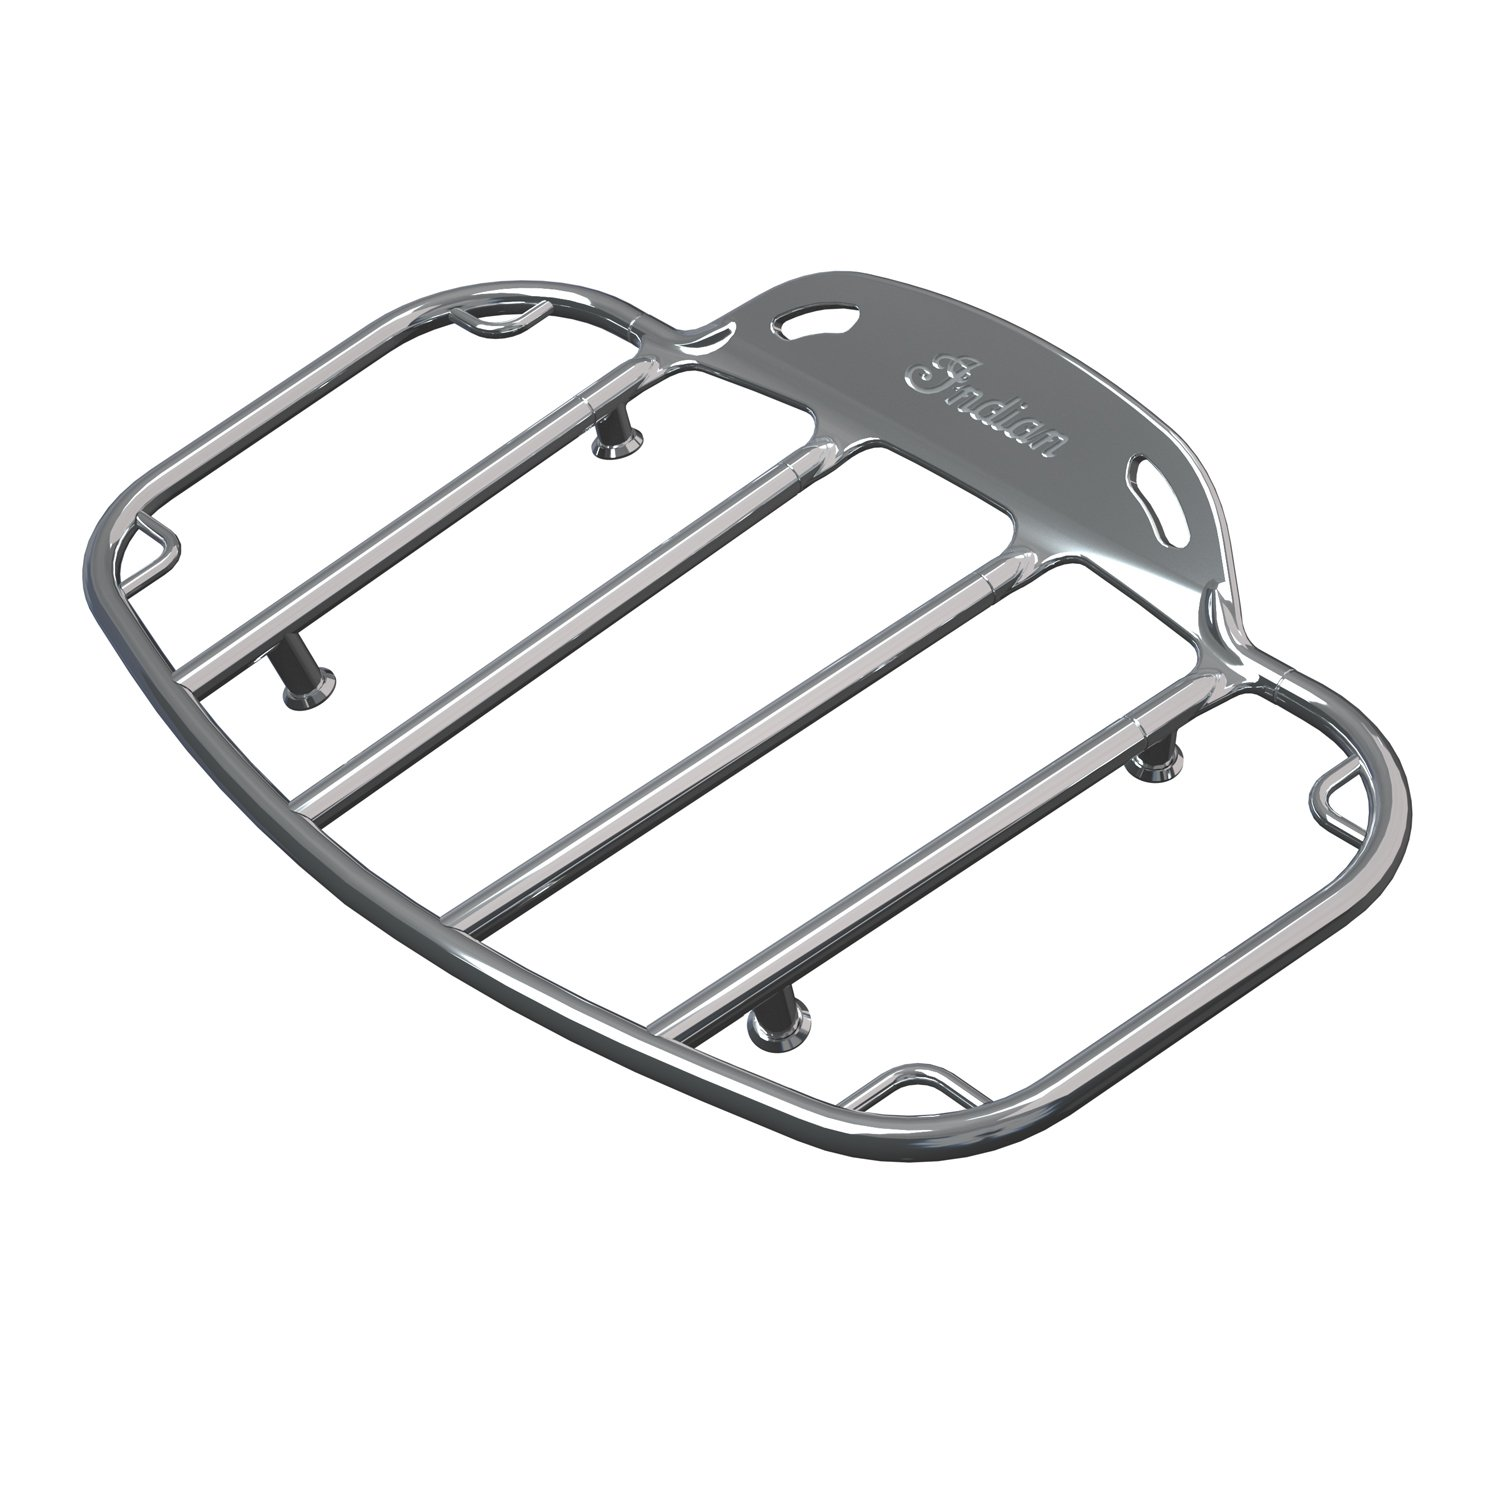 Pinnacle Trunk Rack – Chrome